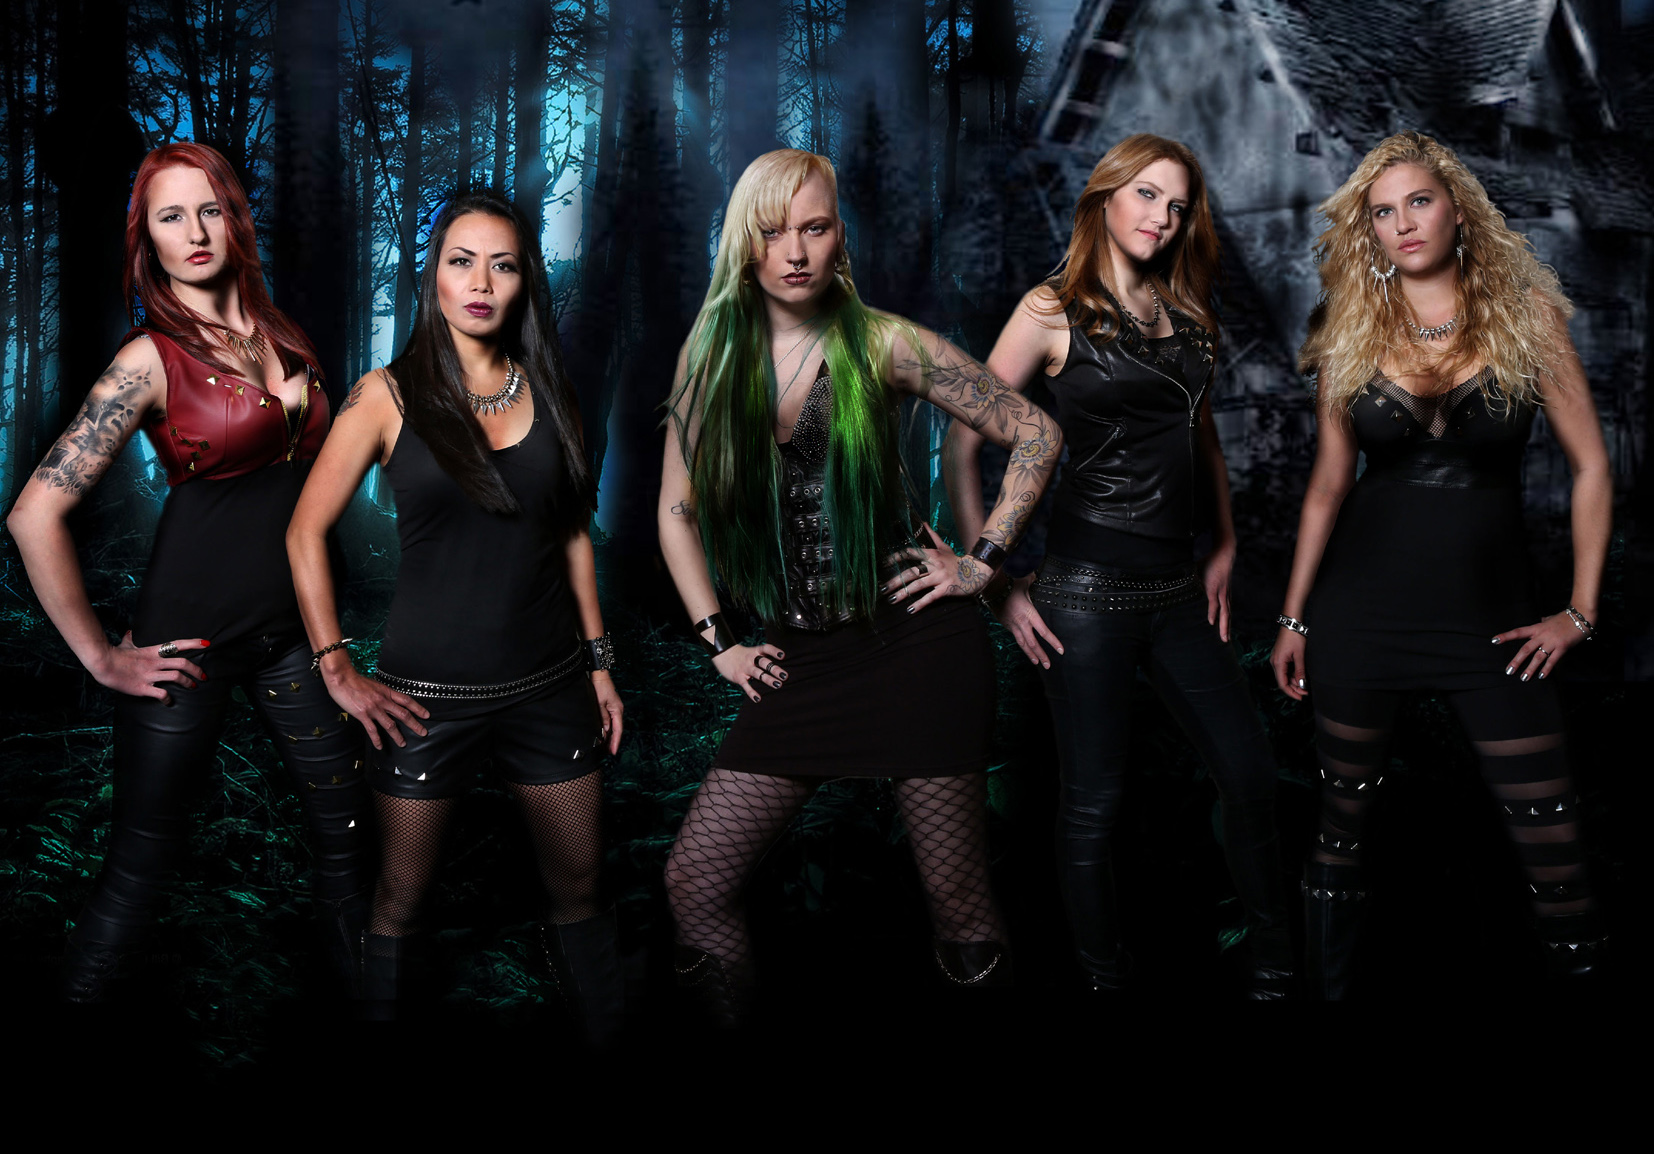 Burning Witches Band Photo from left to right is Jay, Lala, Seraina, Alea, Romana